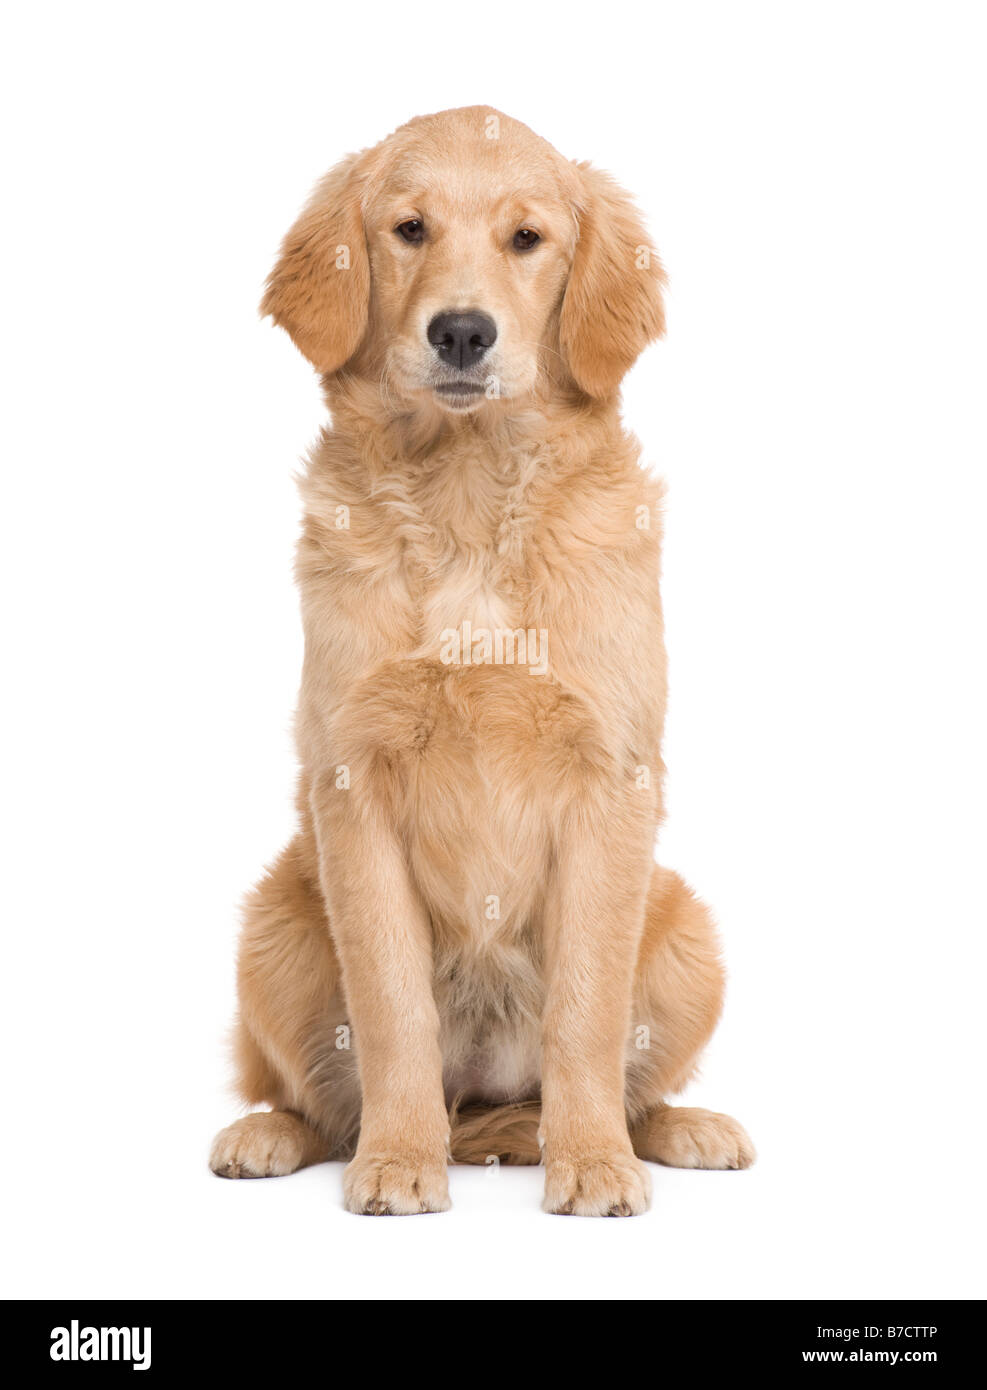 Golden Retriever puppy 5 months facing the camera in front of a white background - Stock Image